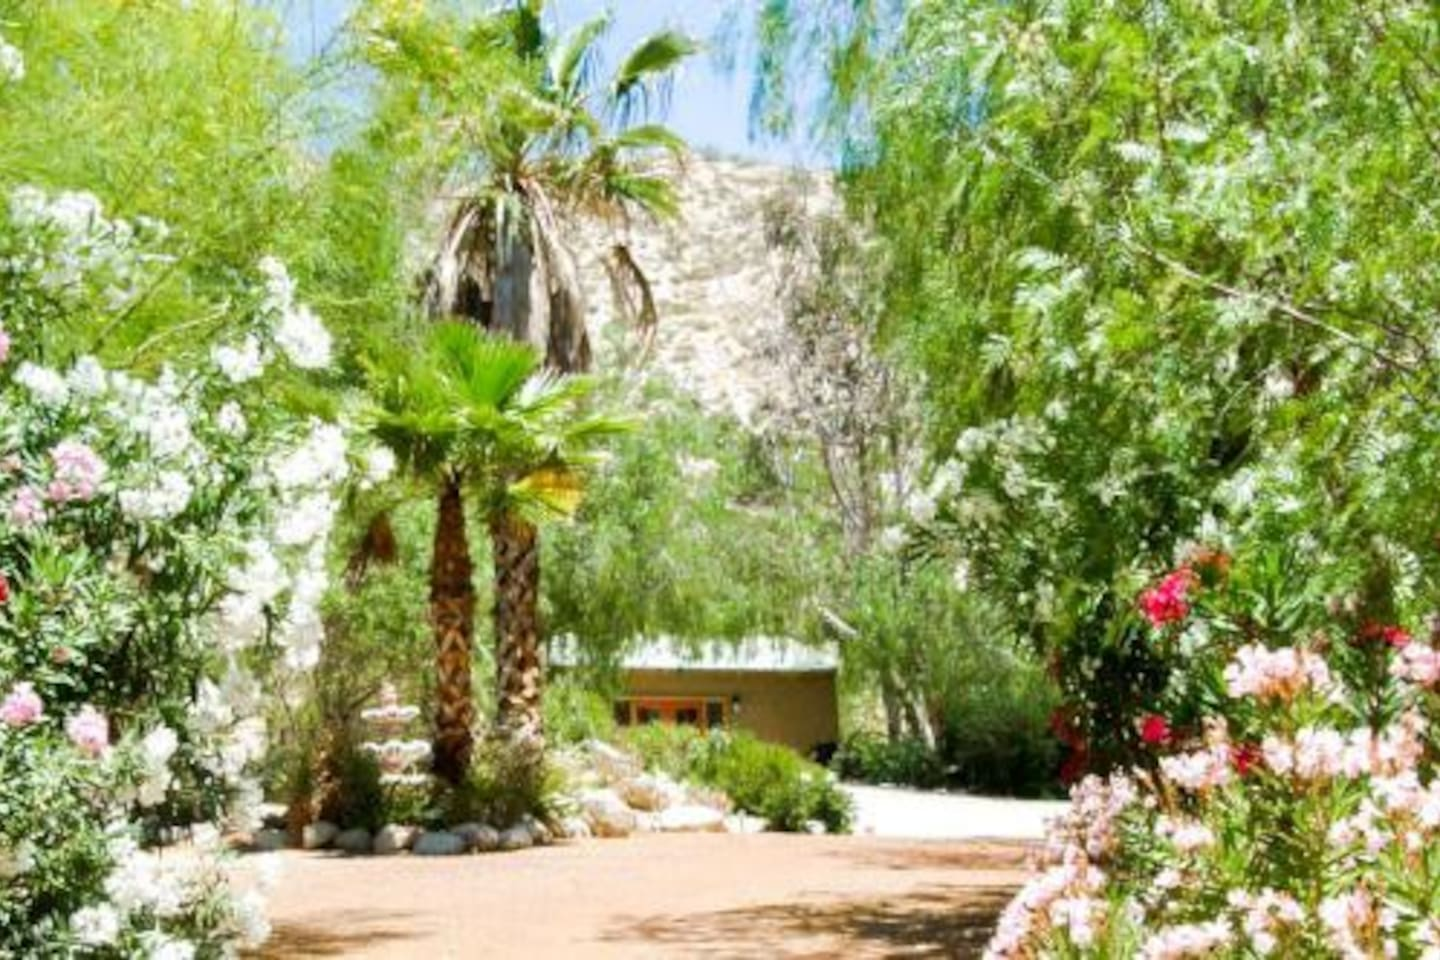 This is the driveway in to the lovely garden oasis. your cottage is straight ahead!                                                                                                                    Secluded outdoor mineral tubs for soaking bliss!